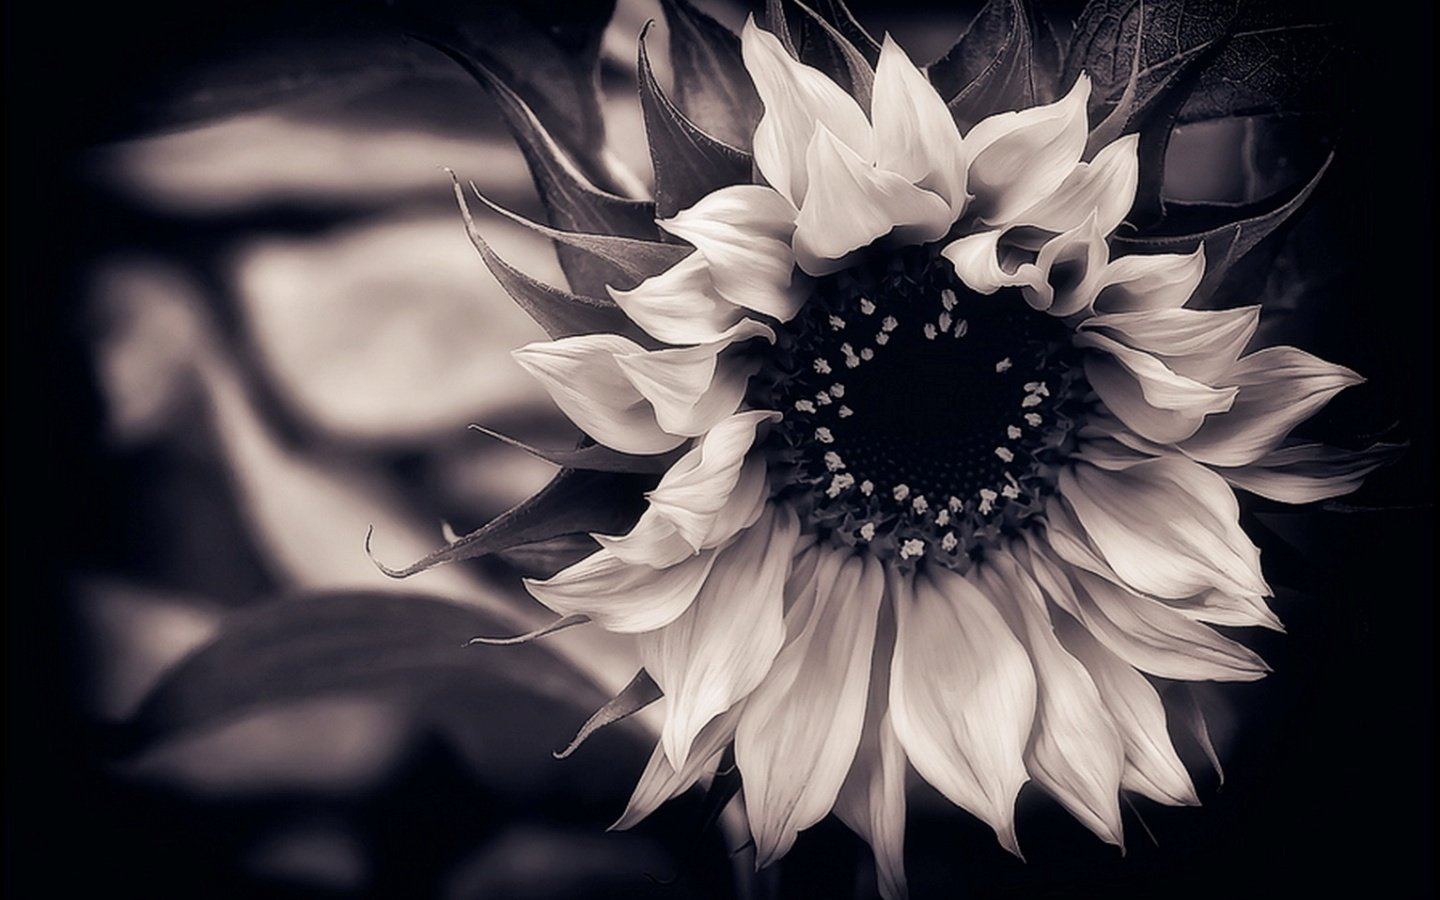 Free Download Black And White Flower Wallpaperhtmlblack And